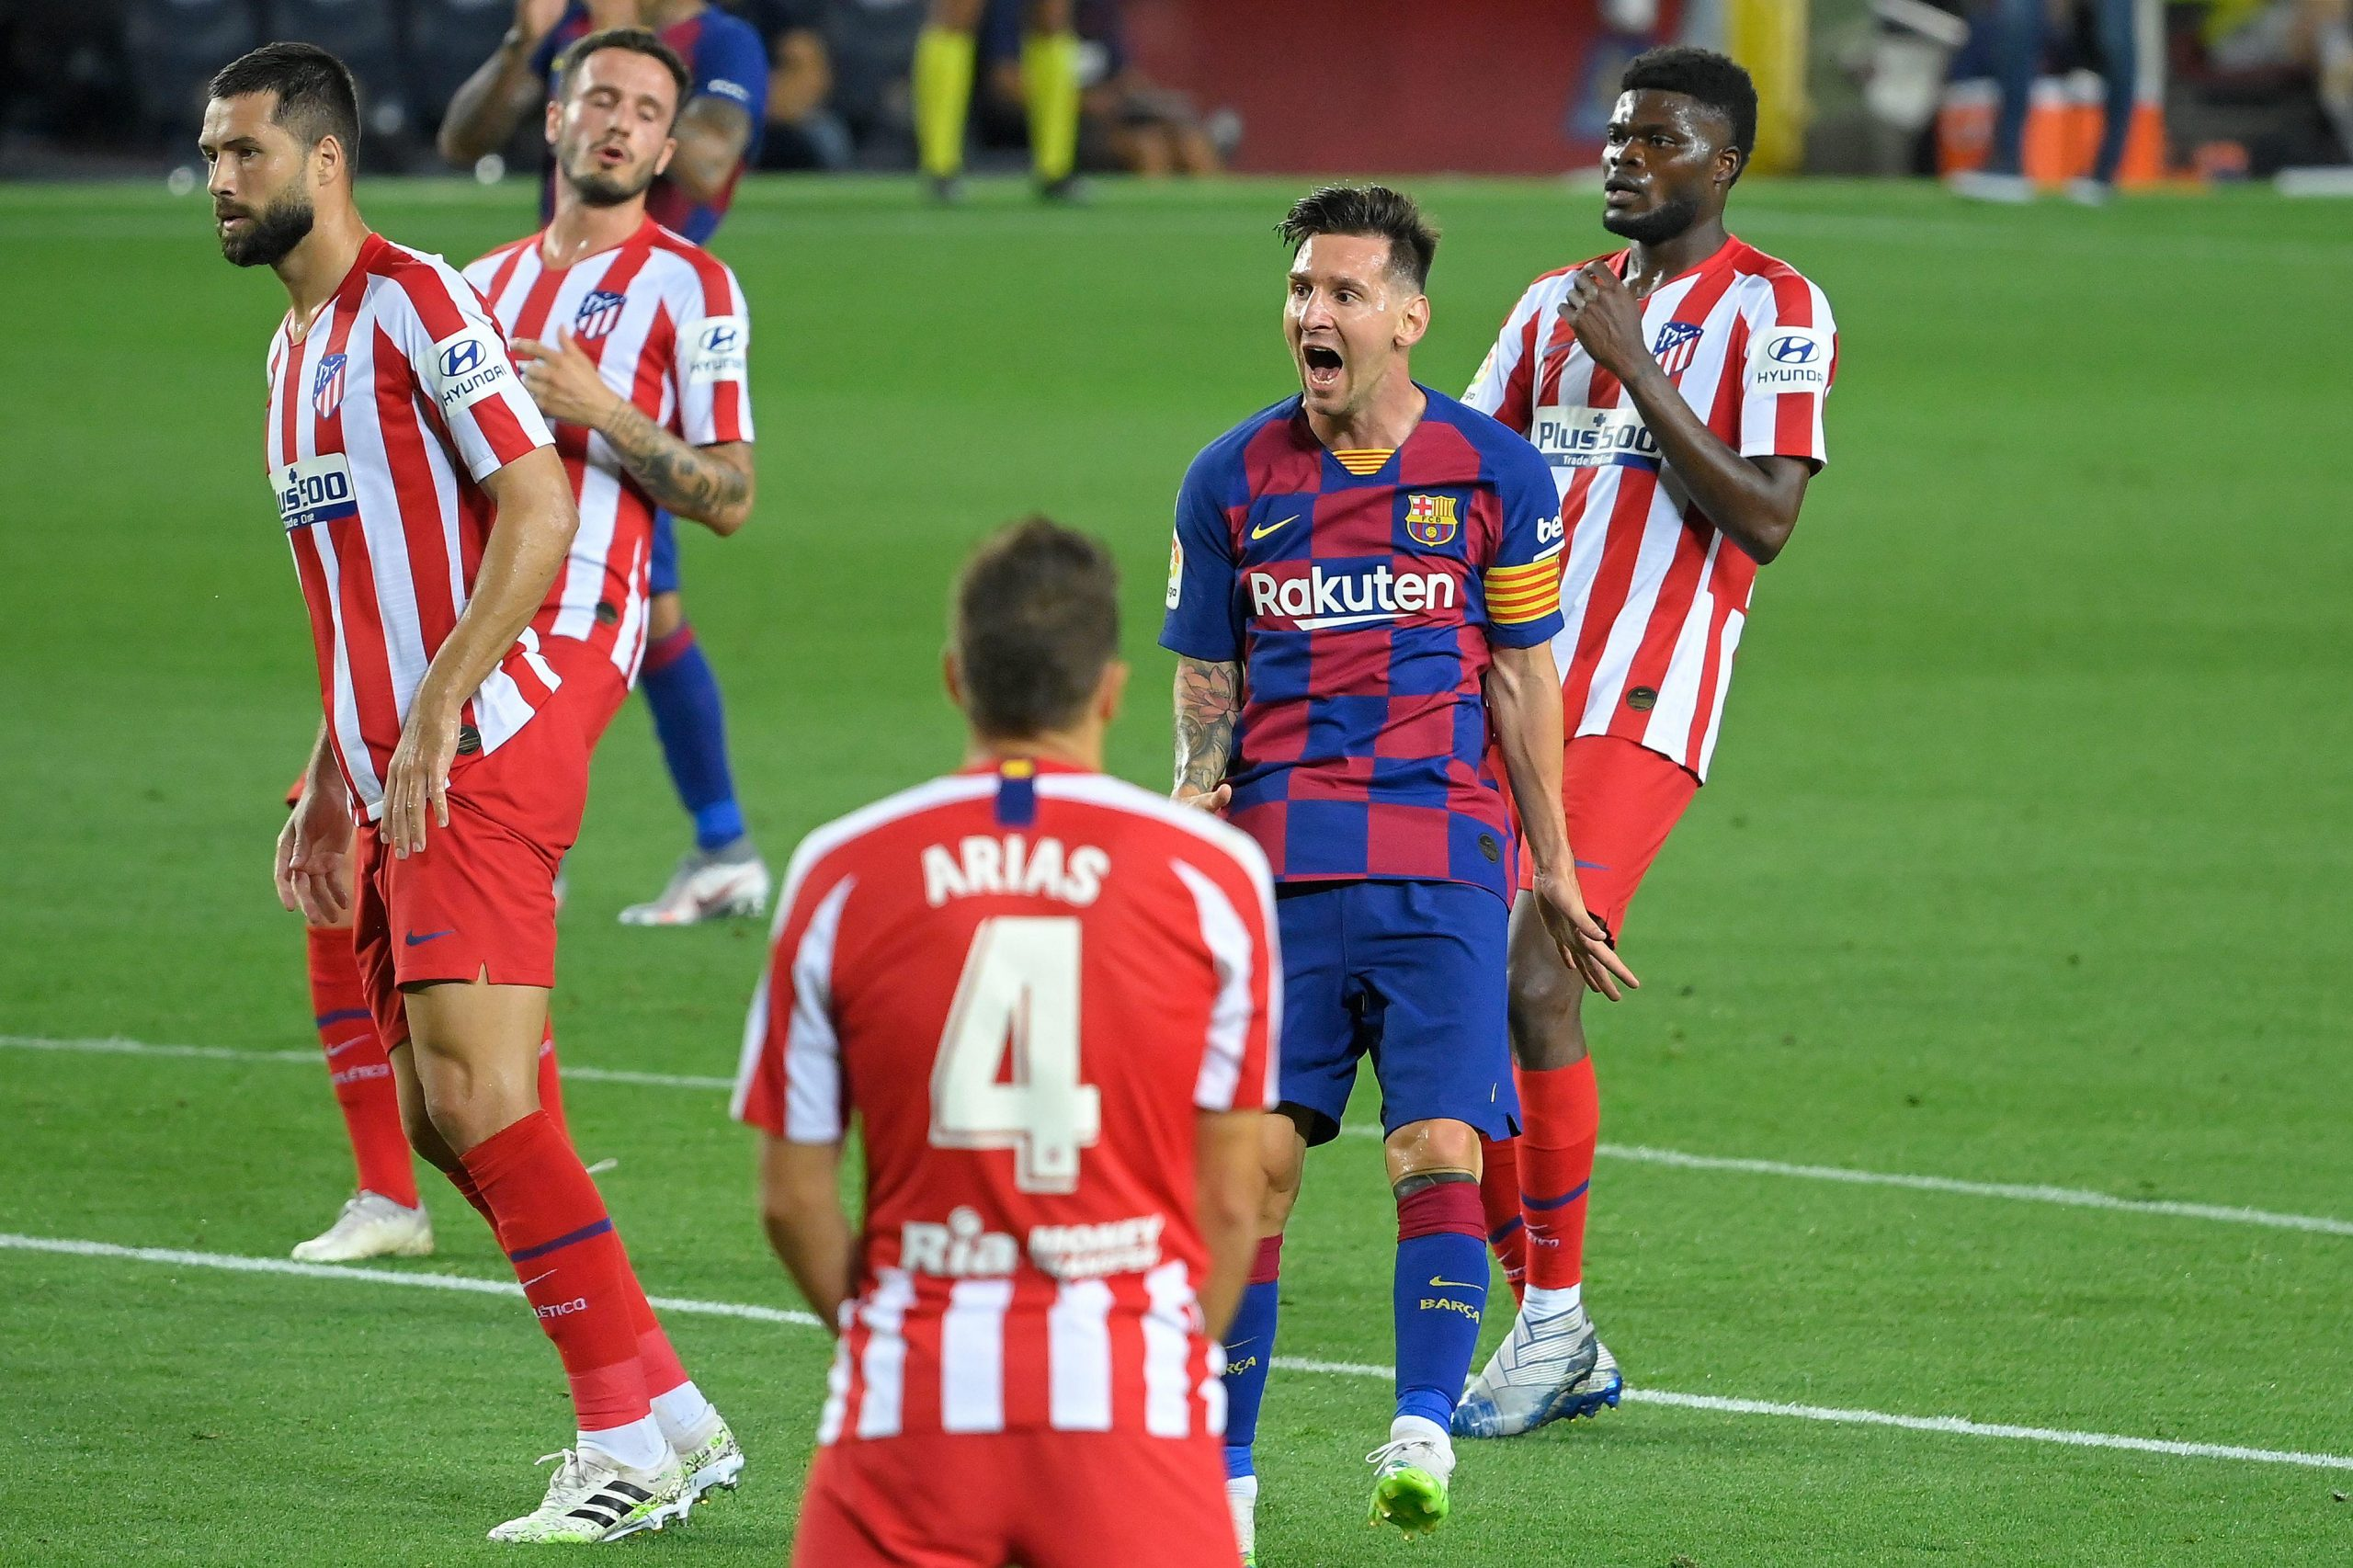 Lionel Messi reacts after missing a goal opportunity during the match between FC Barcelona and Atletico de Madrid / LLUIS GENE / AFP GETTY IMAGES